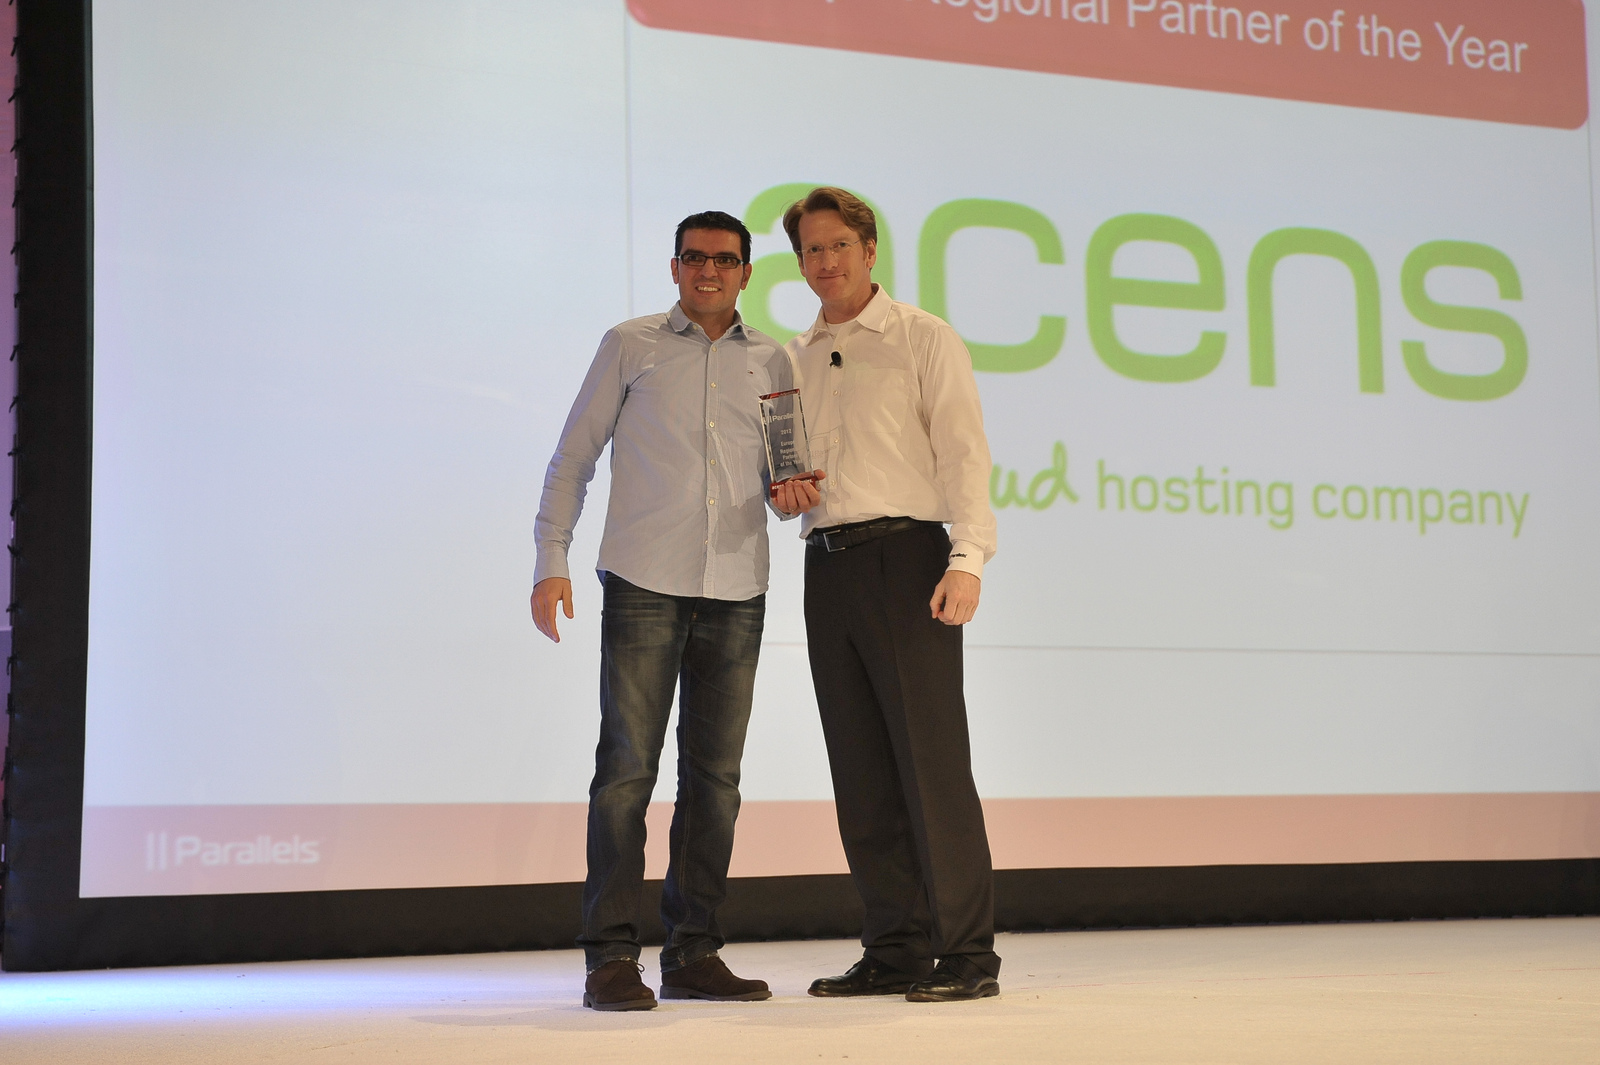 acens european parallels partner award